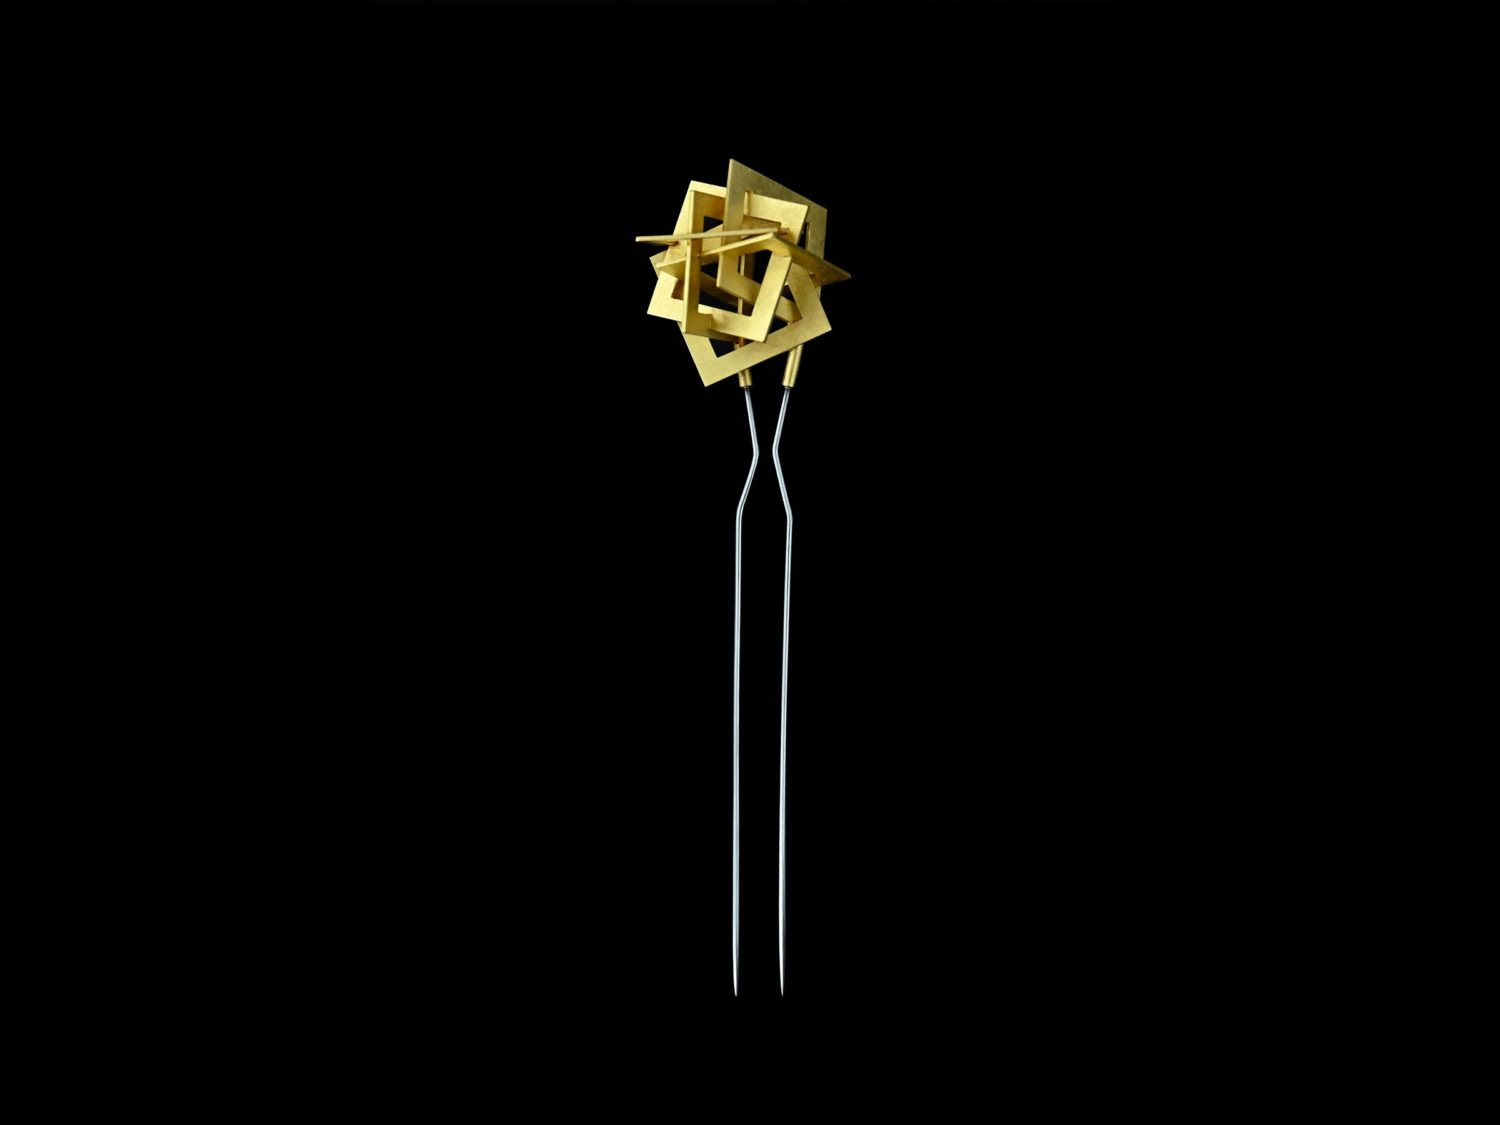 Brooch, gold, stainless steel, 2010